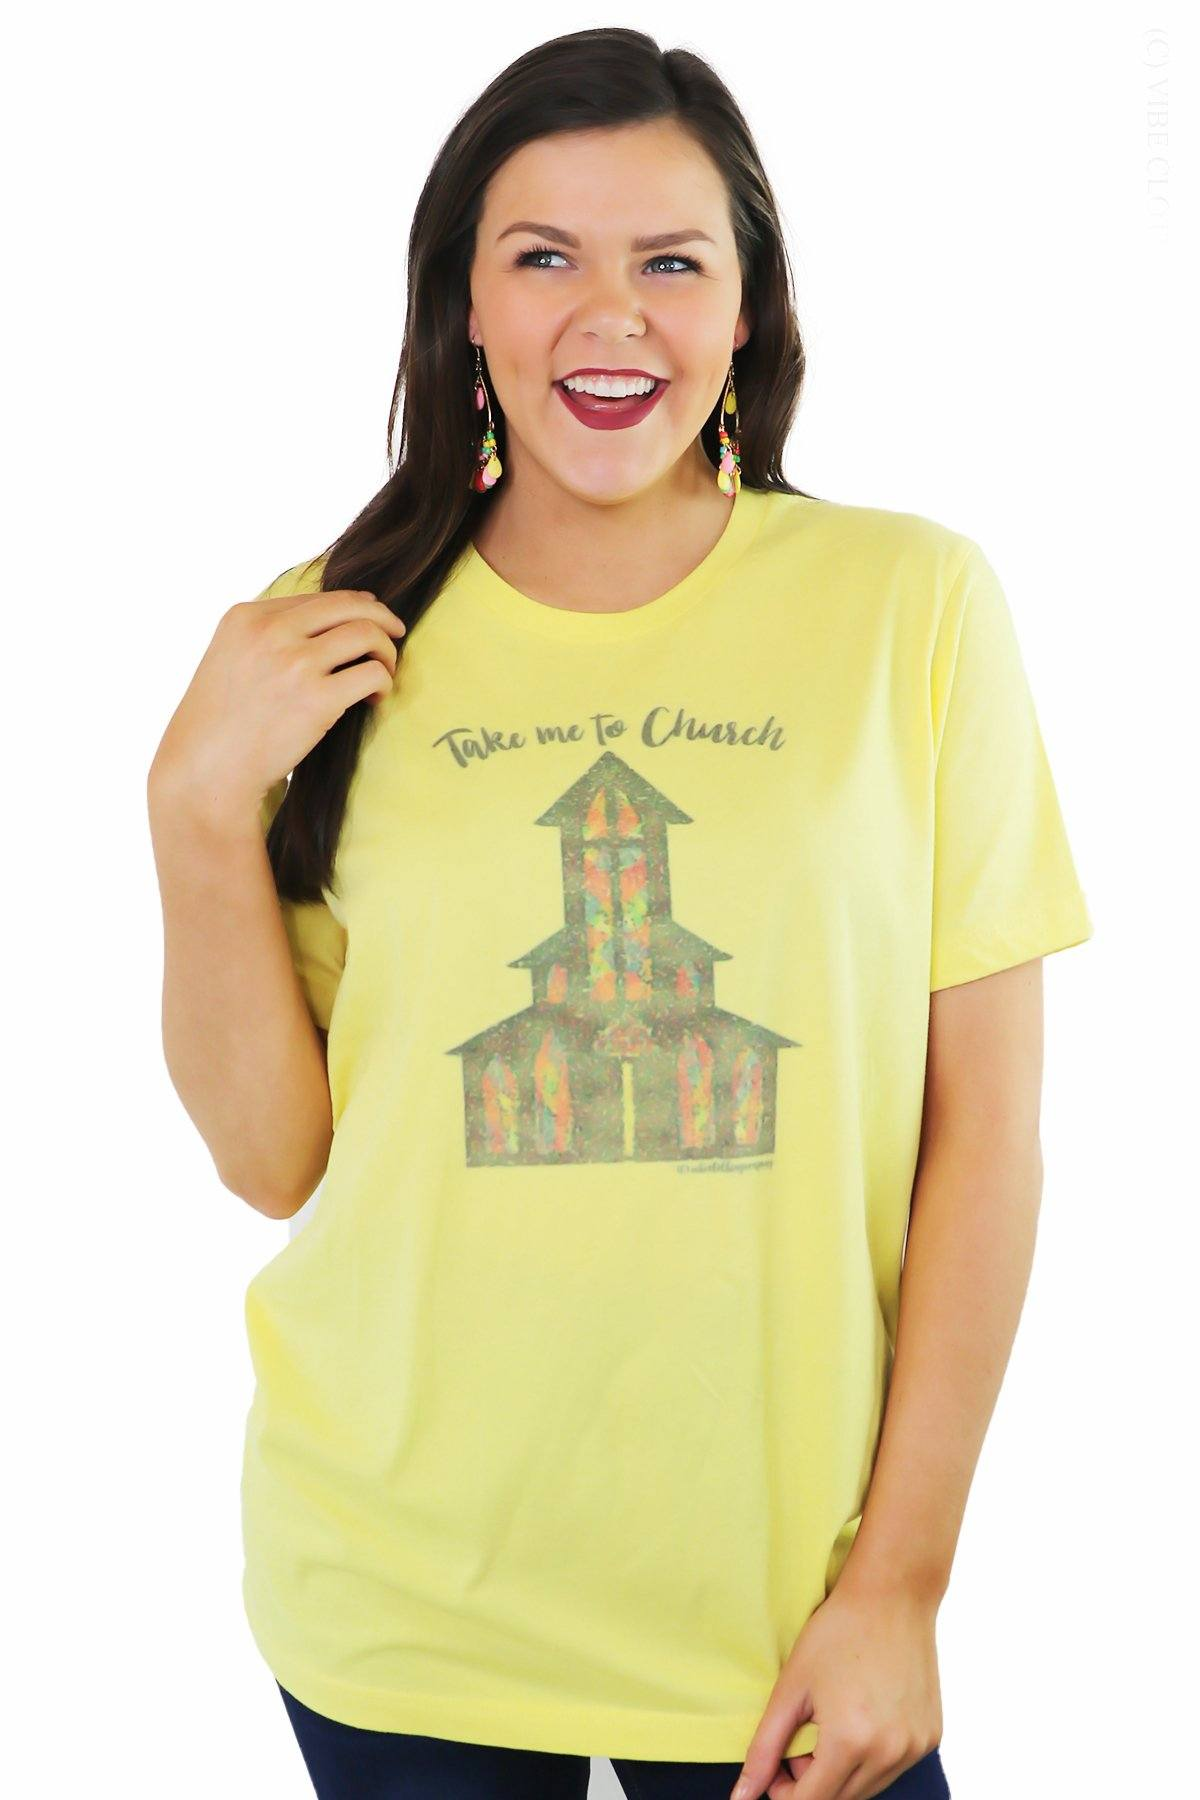 Take Me to Church Graphic Tee graphic tees Mark tee Small Yellow